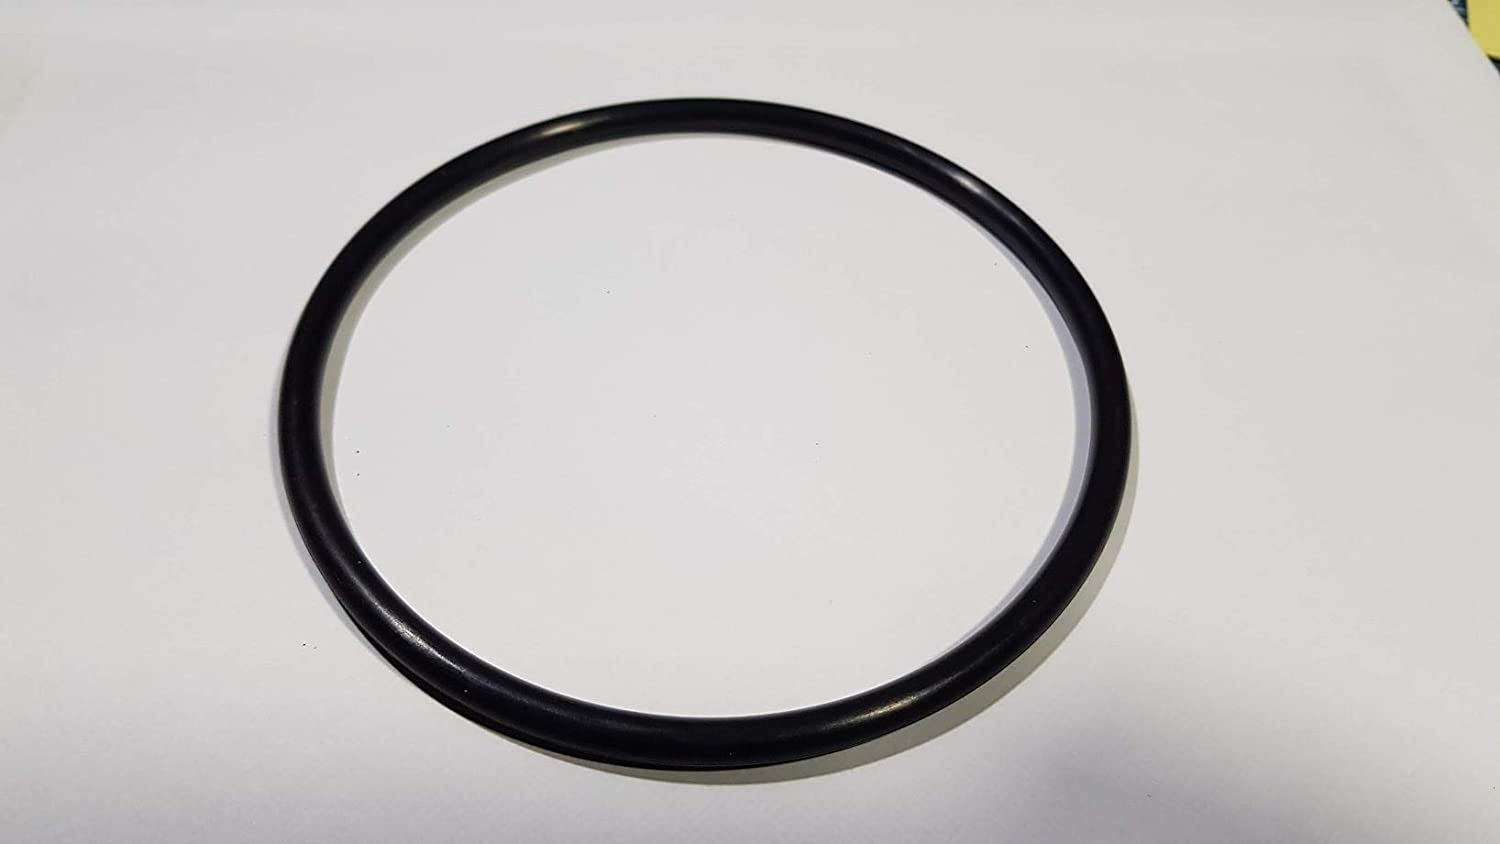 KKP Sewing High Quality Domestic Sewing Machine Rubber Belt  Motor Drive Belt for Old//Vintage Sewing Machines External Motor